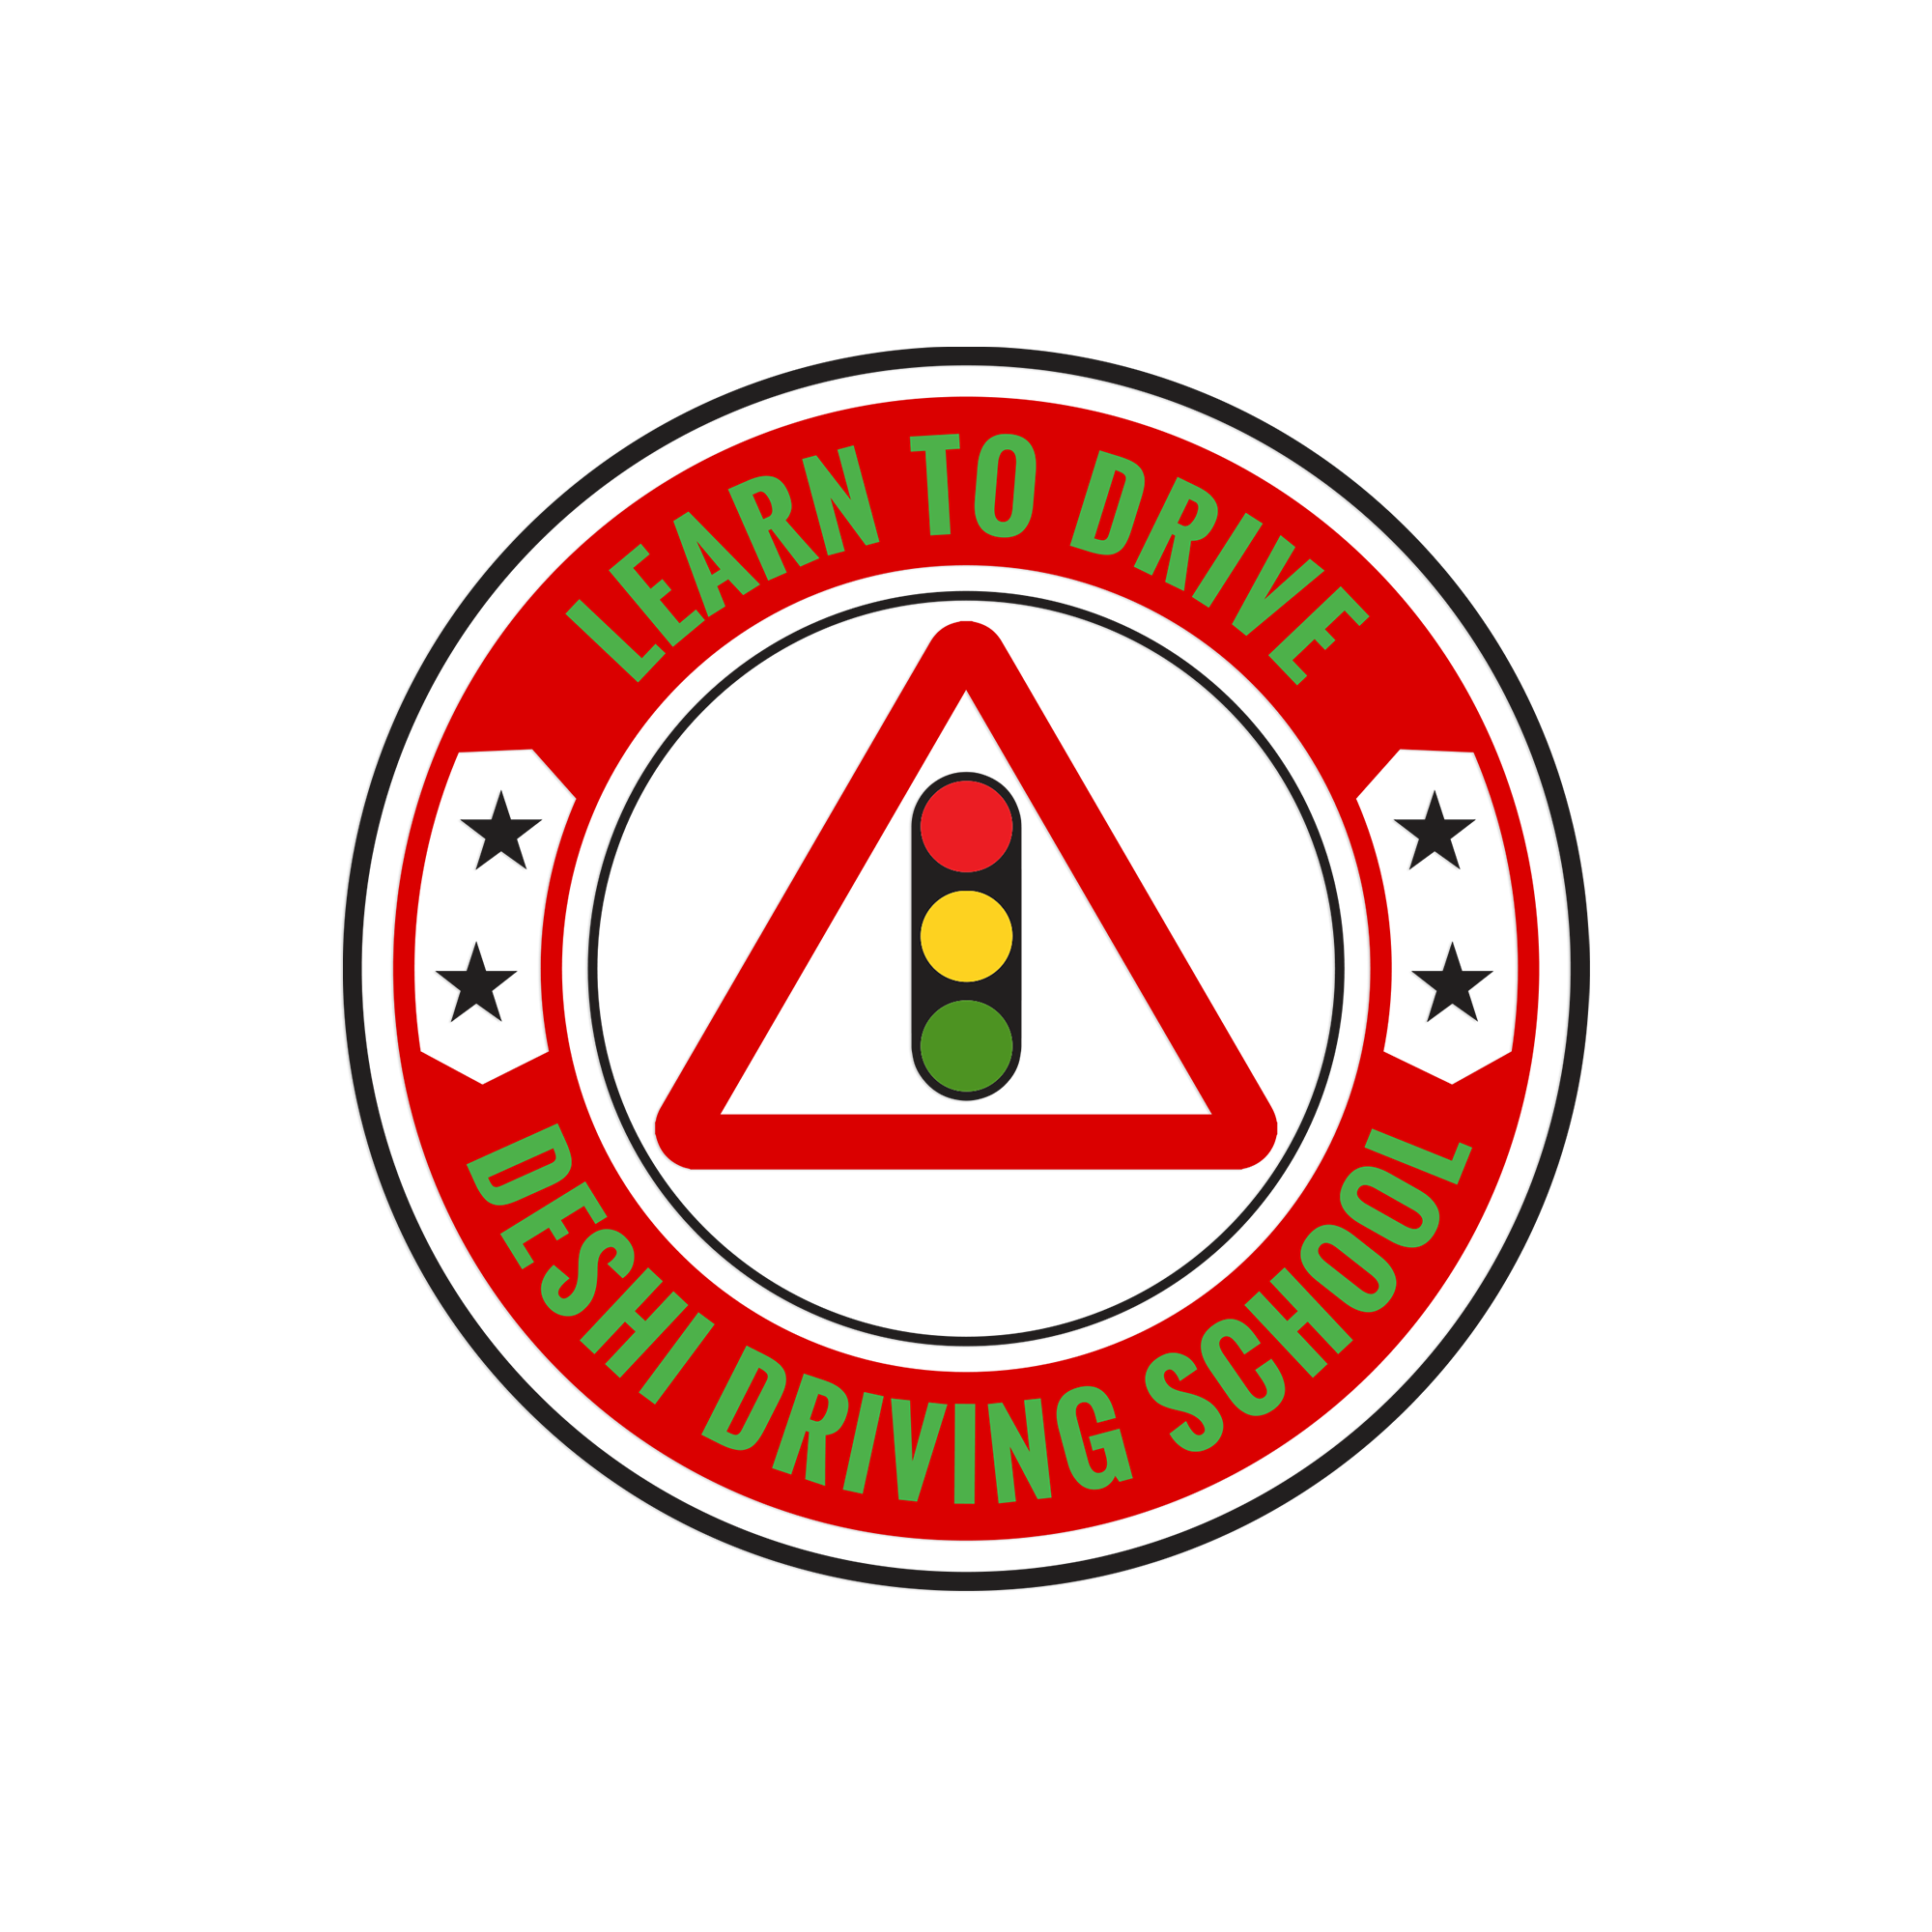 Deshi Driving School LOGO